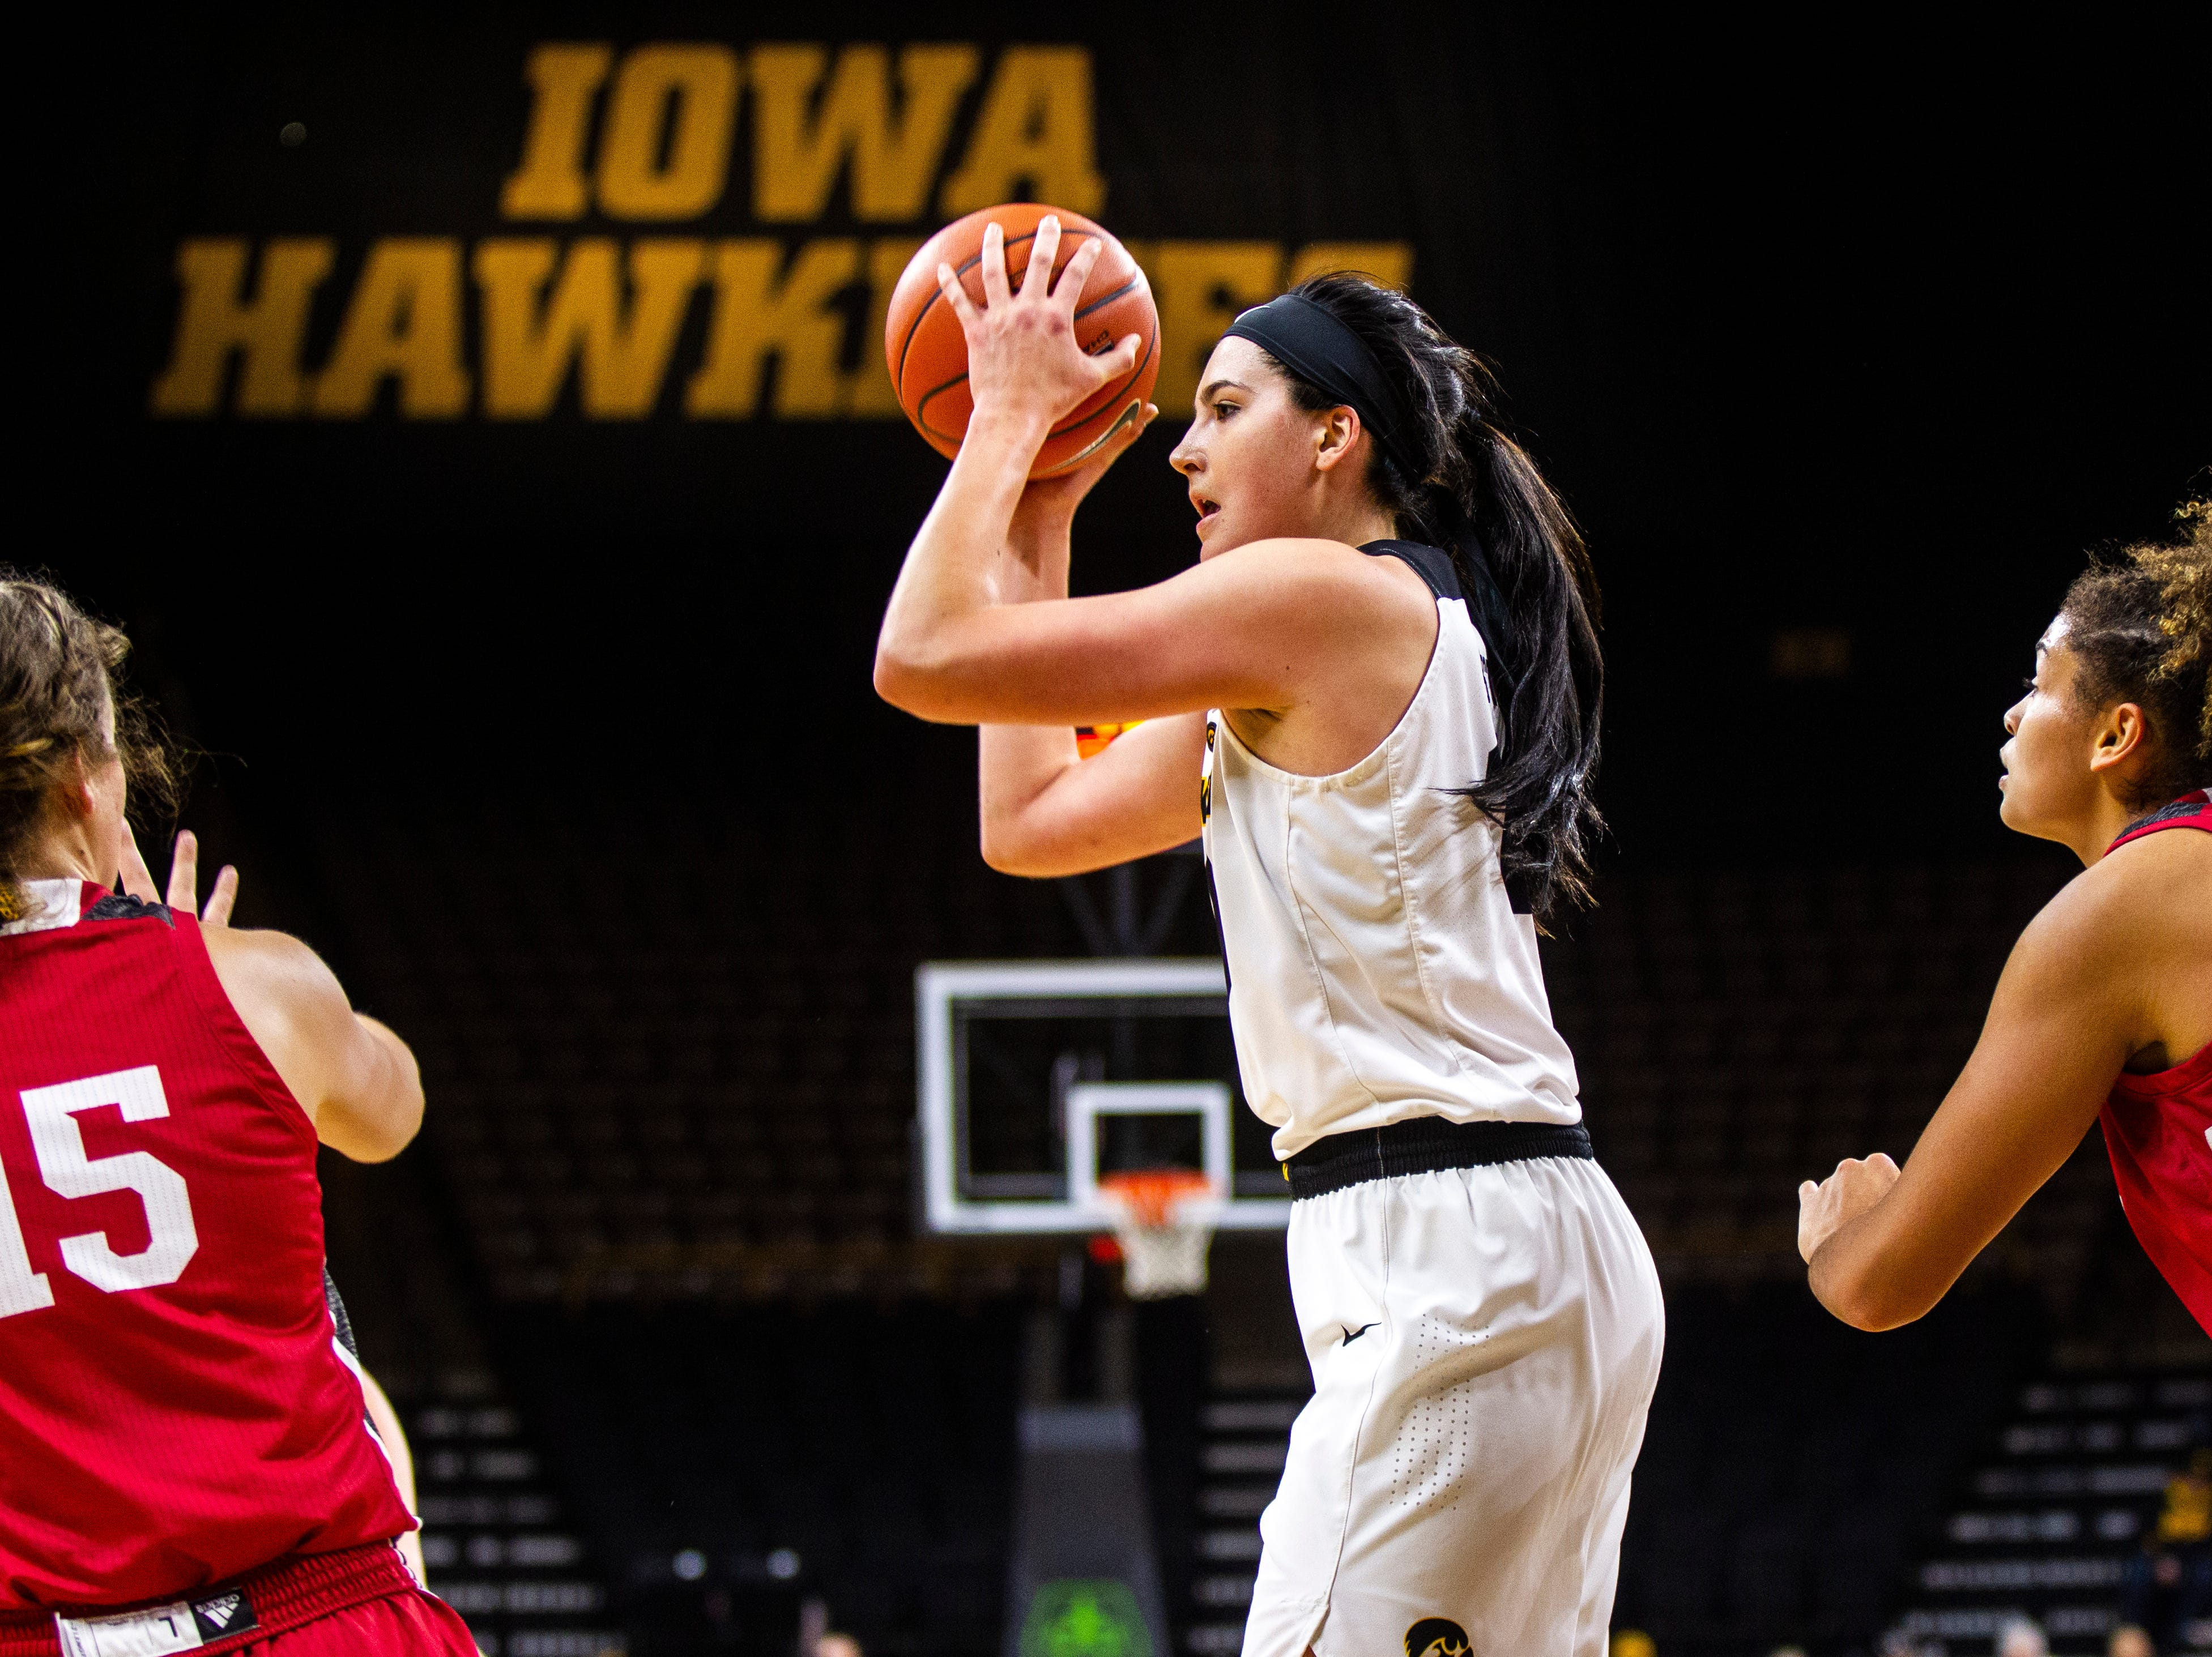 Iowa forward Megan Gustafson (10) looks to pass during a NCAA women's basketball game on Saturday, Dec. 8, 2018, at Carver-Hawkeye Arena in Iowa City.